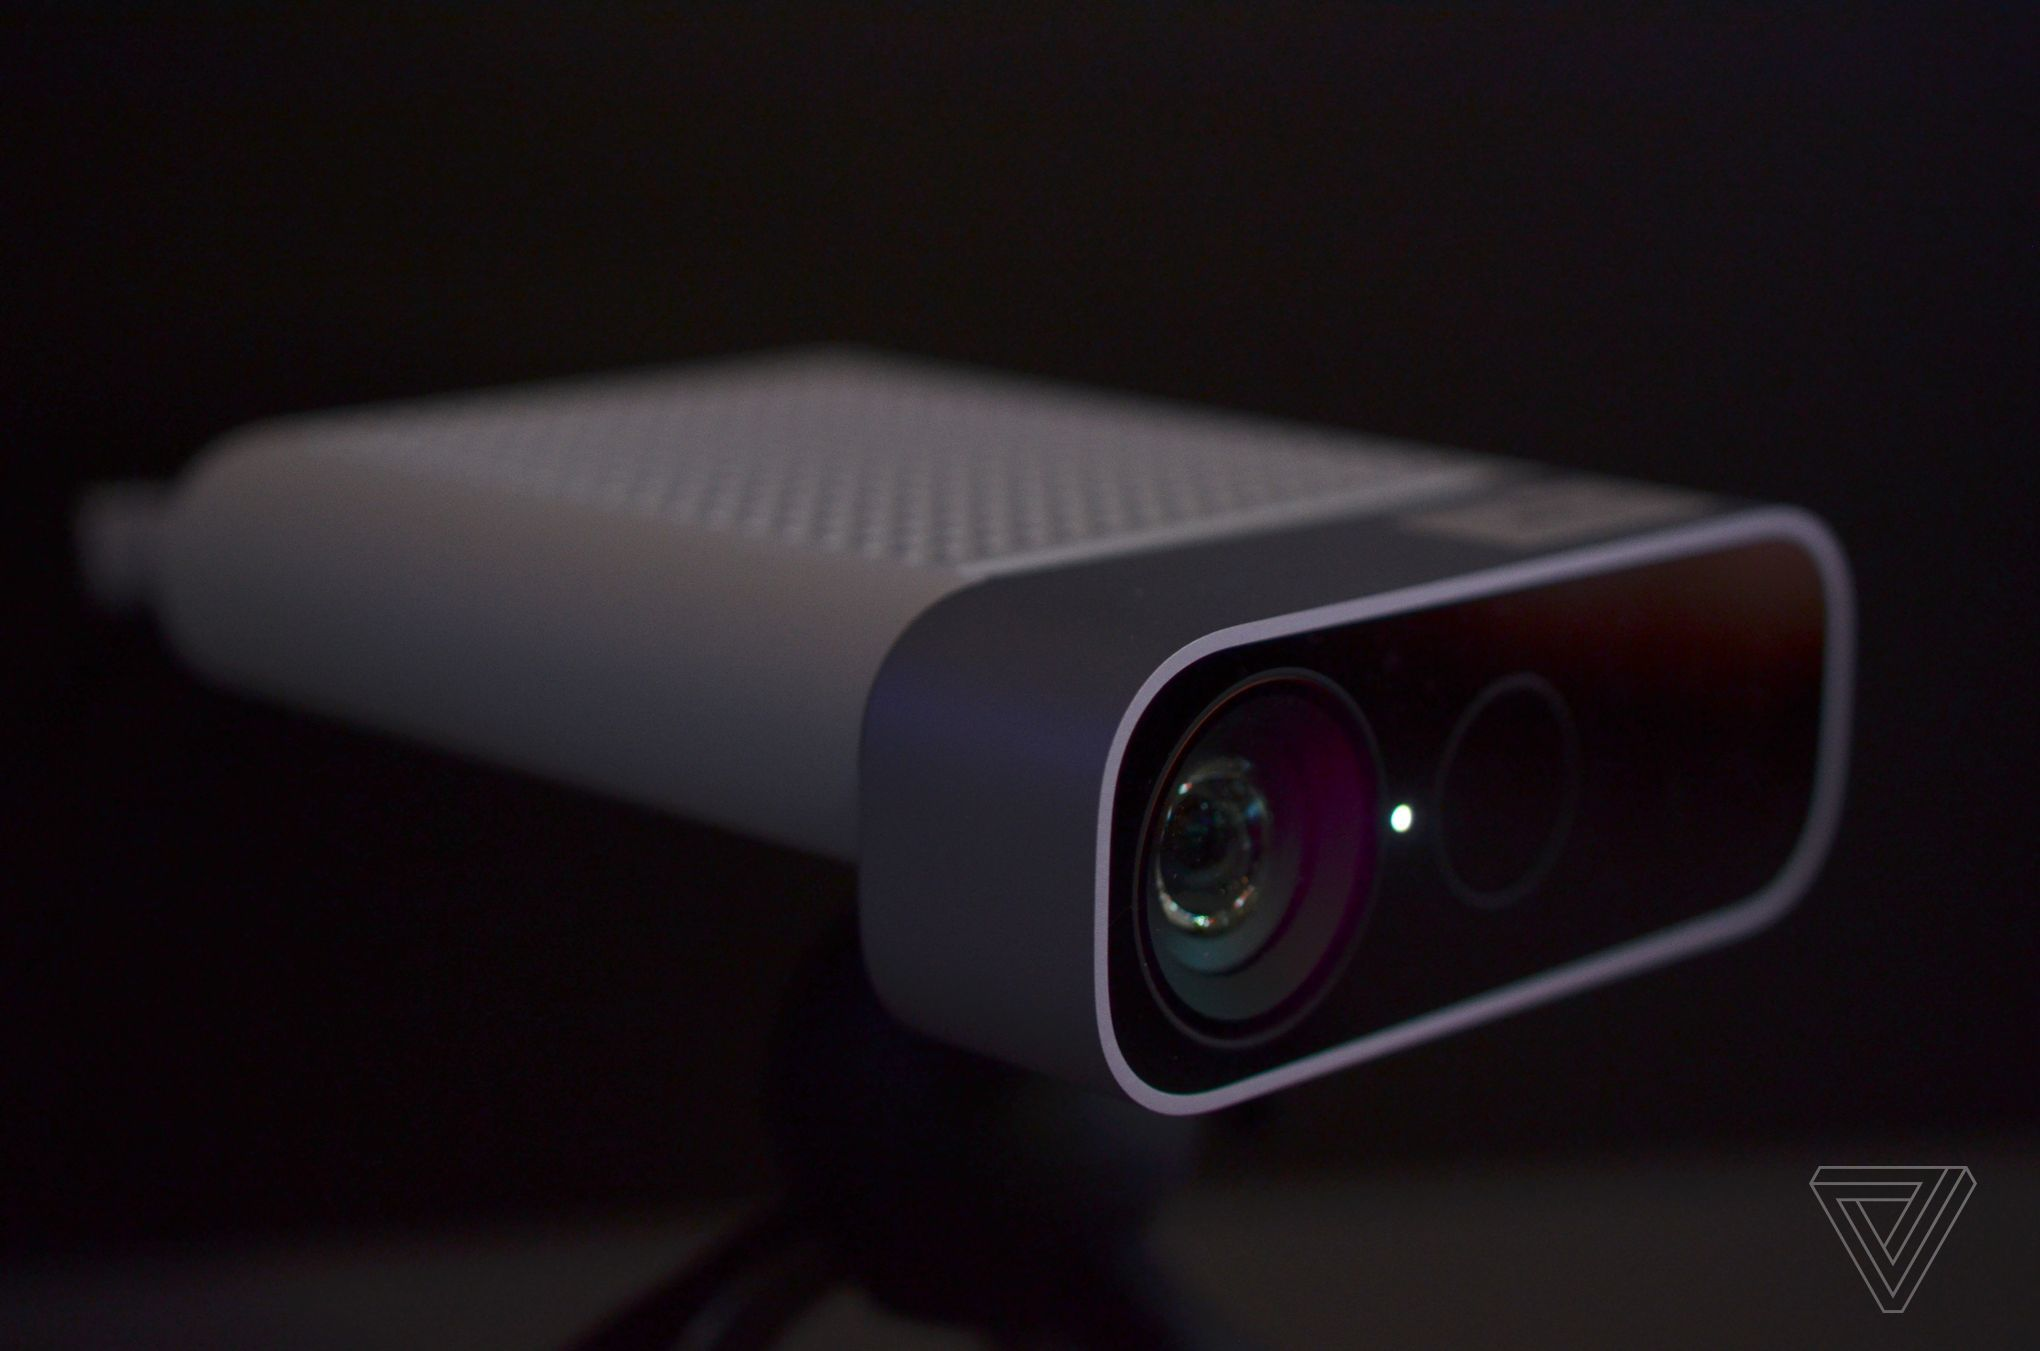 A closer look at Microsoft's new Kinect sensor - The Verge